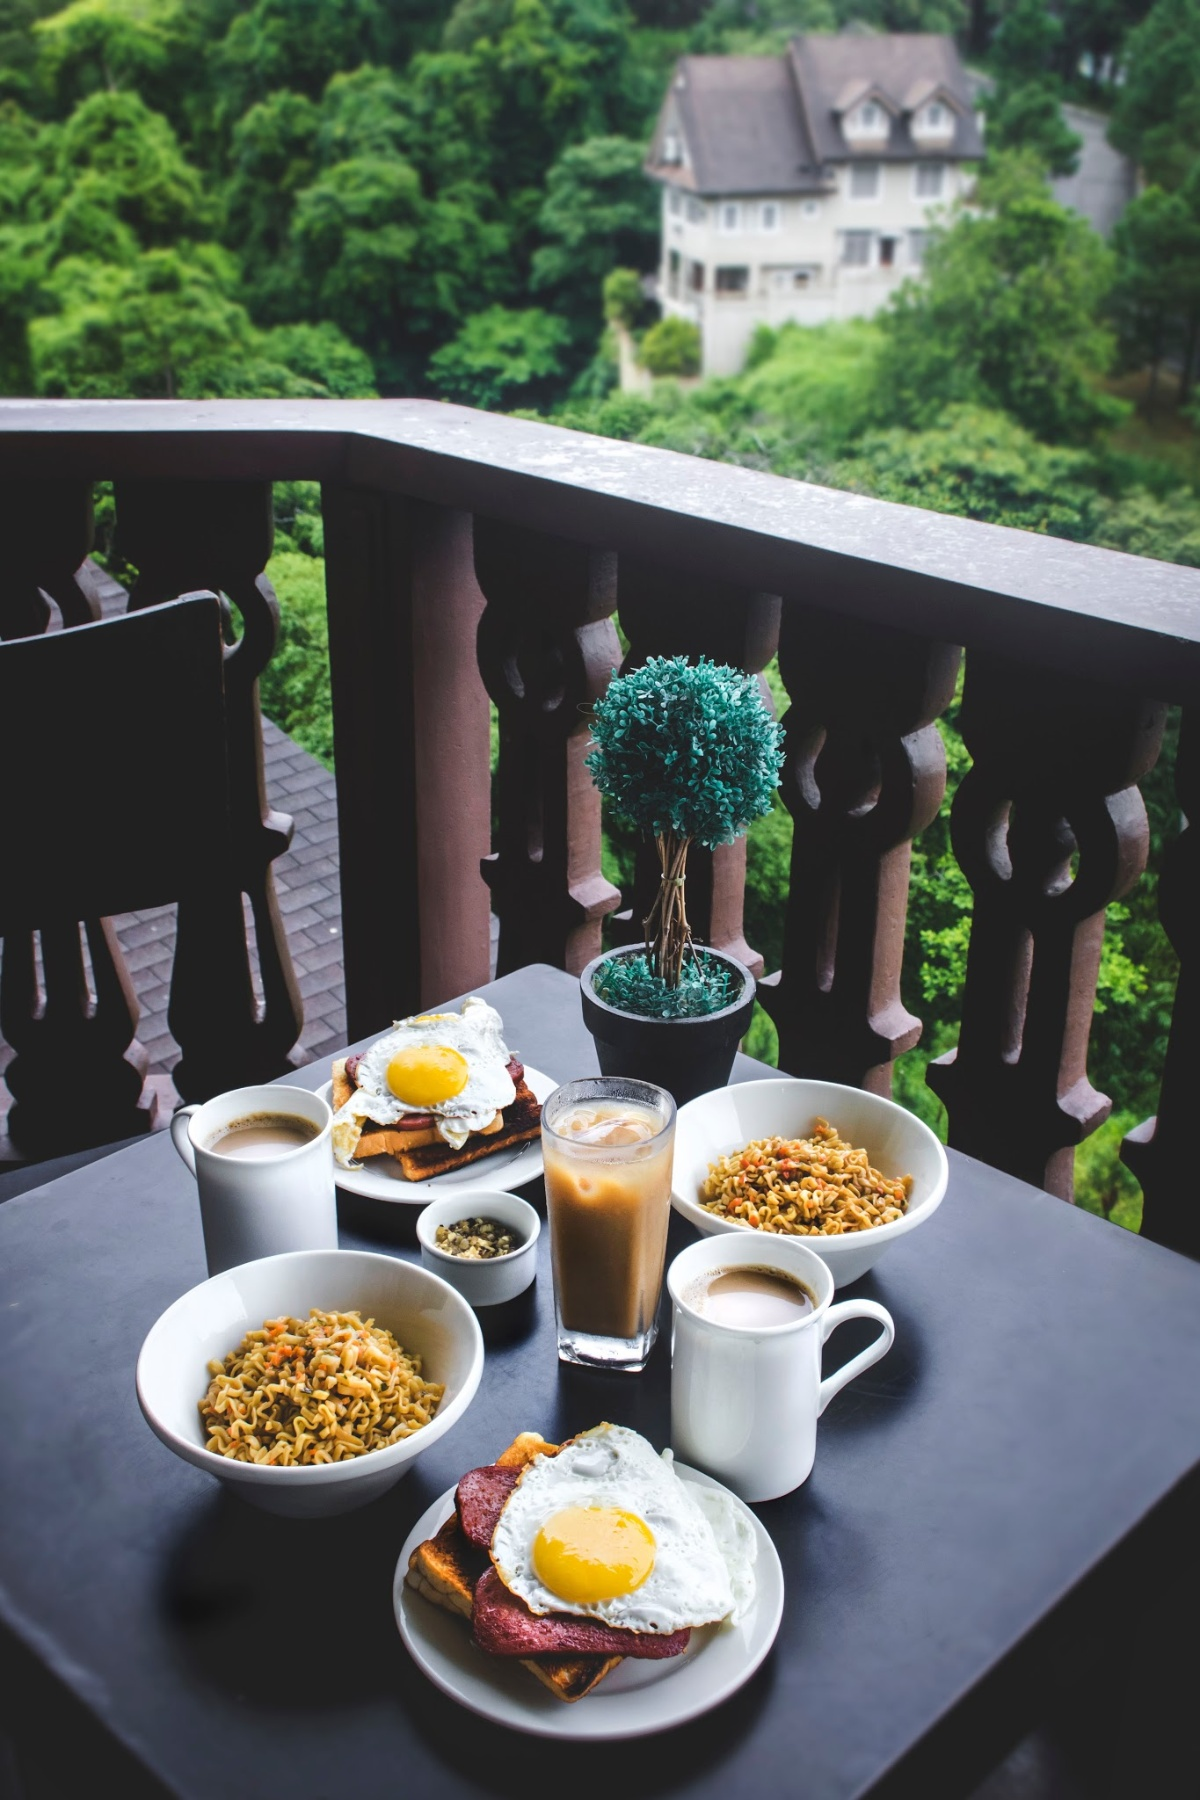 Romantic getaway at a bed and breakfast